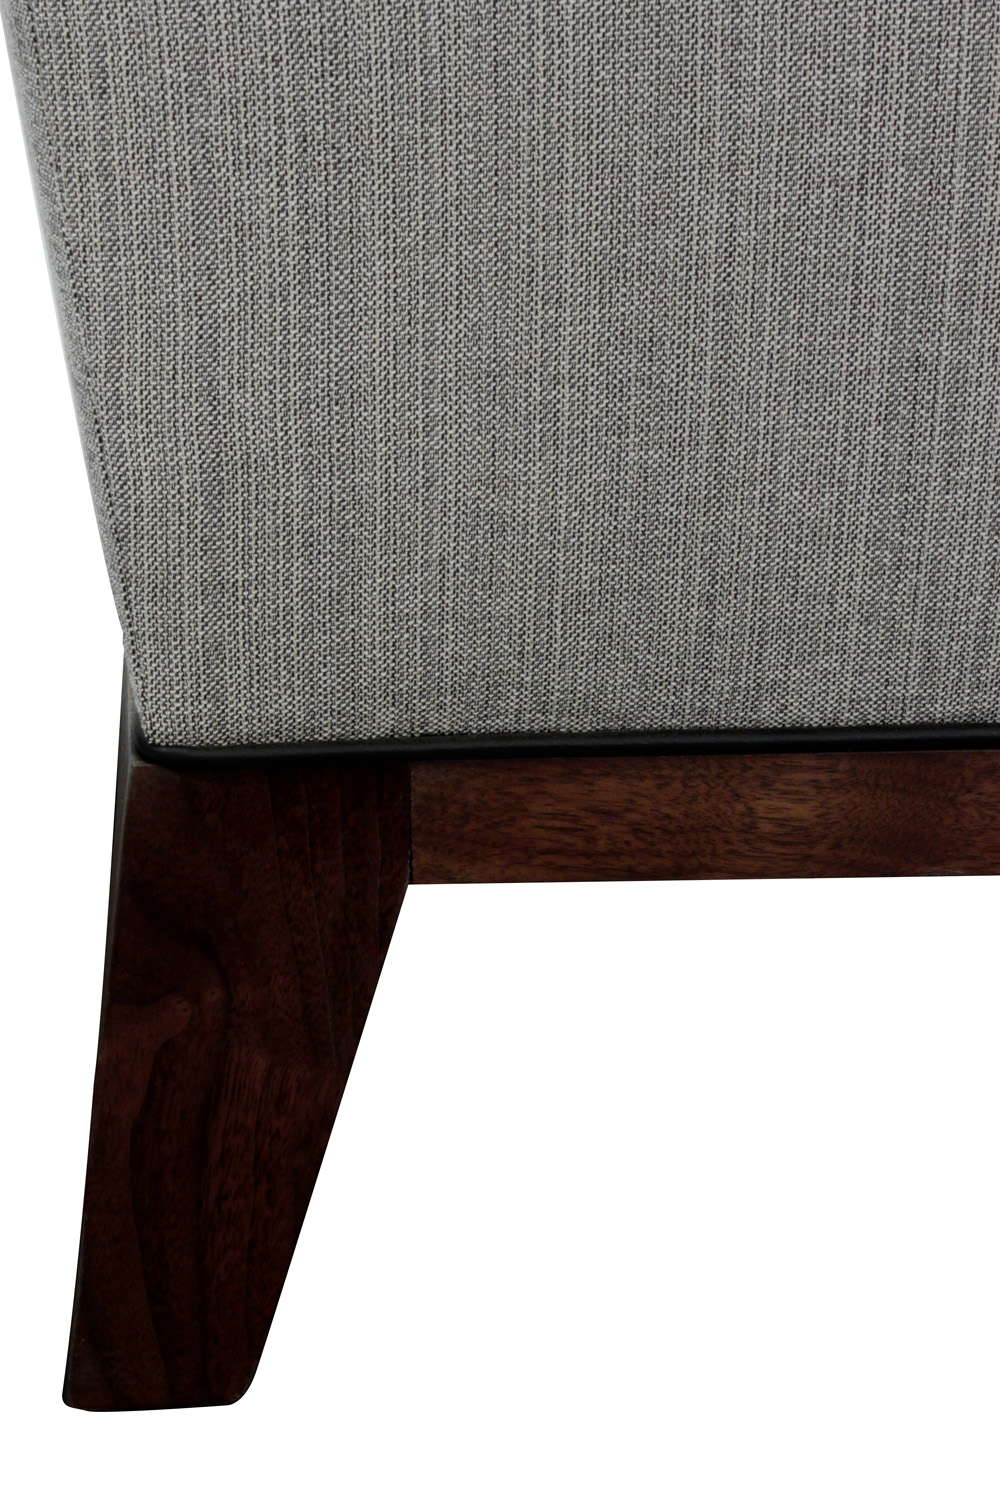 T Hayes12 lrg club chairs loungechairs137 detail2 hires.jpg